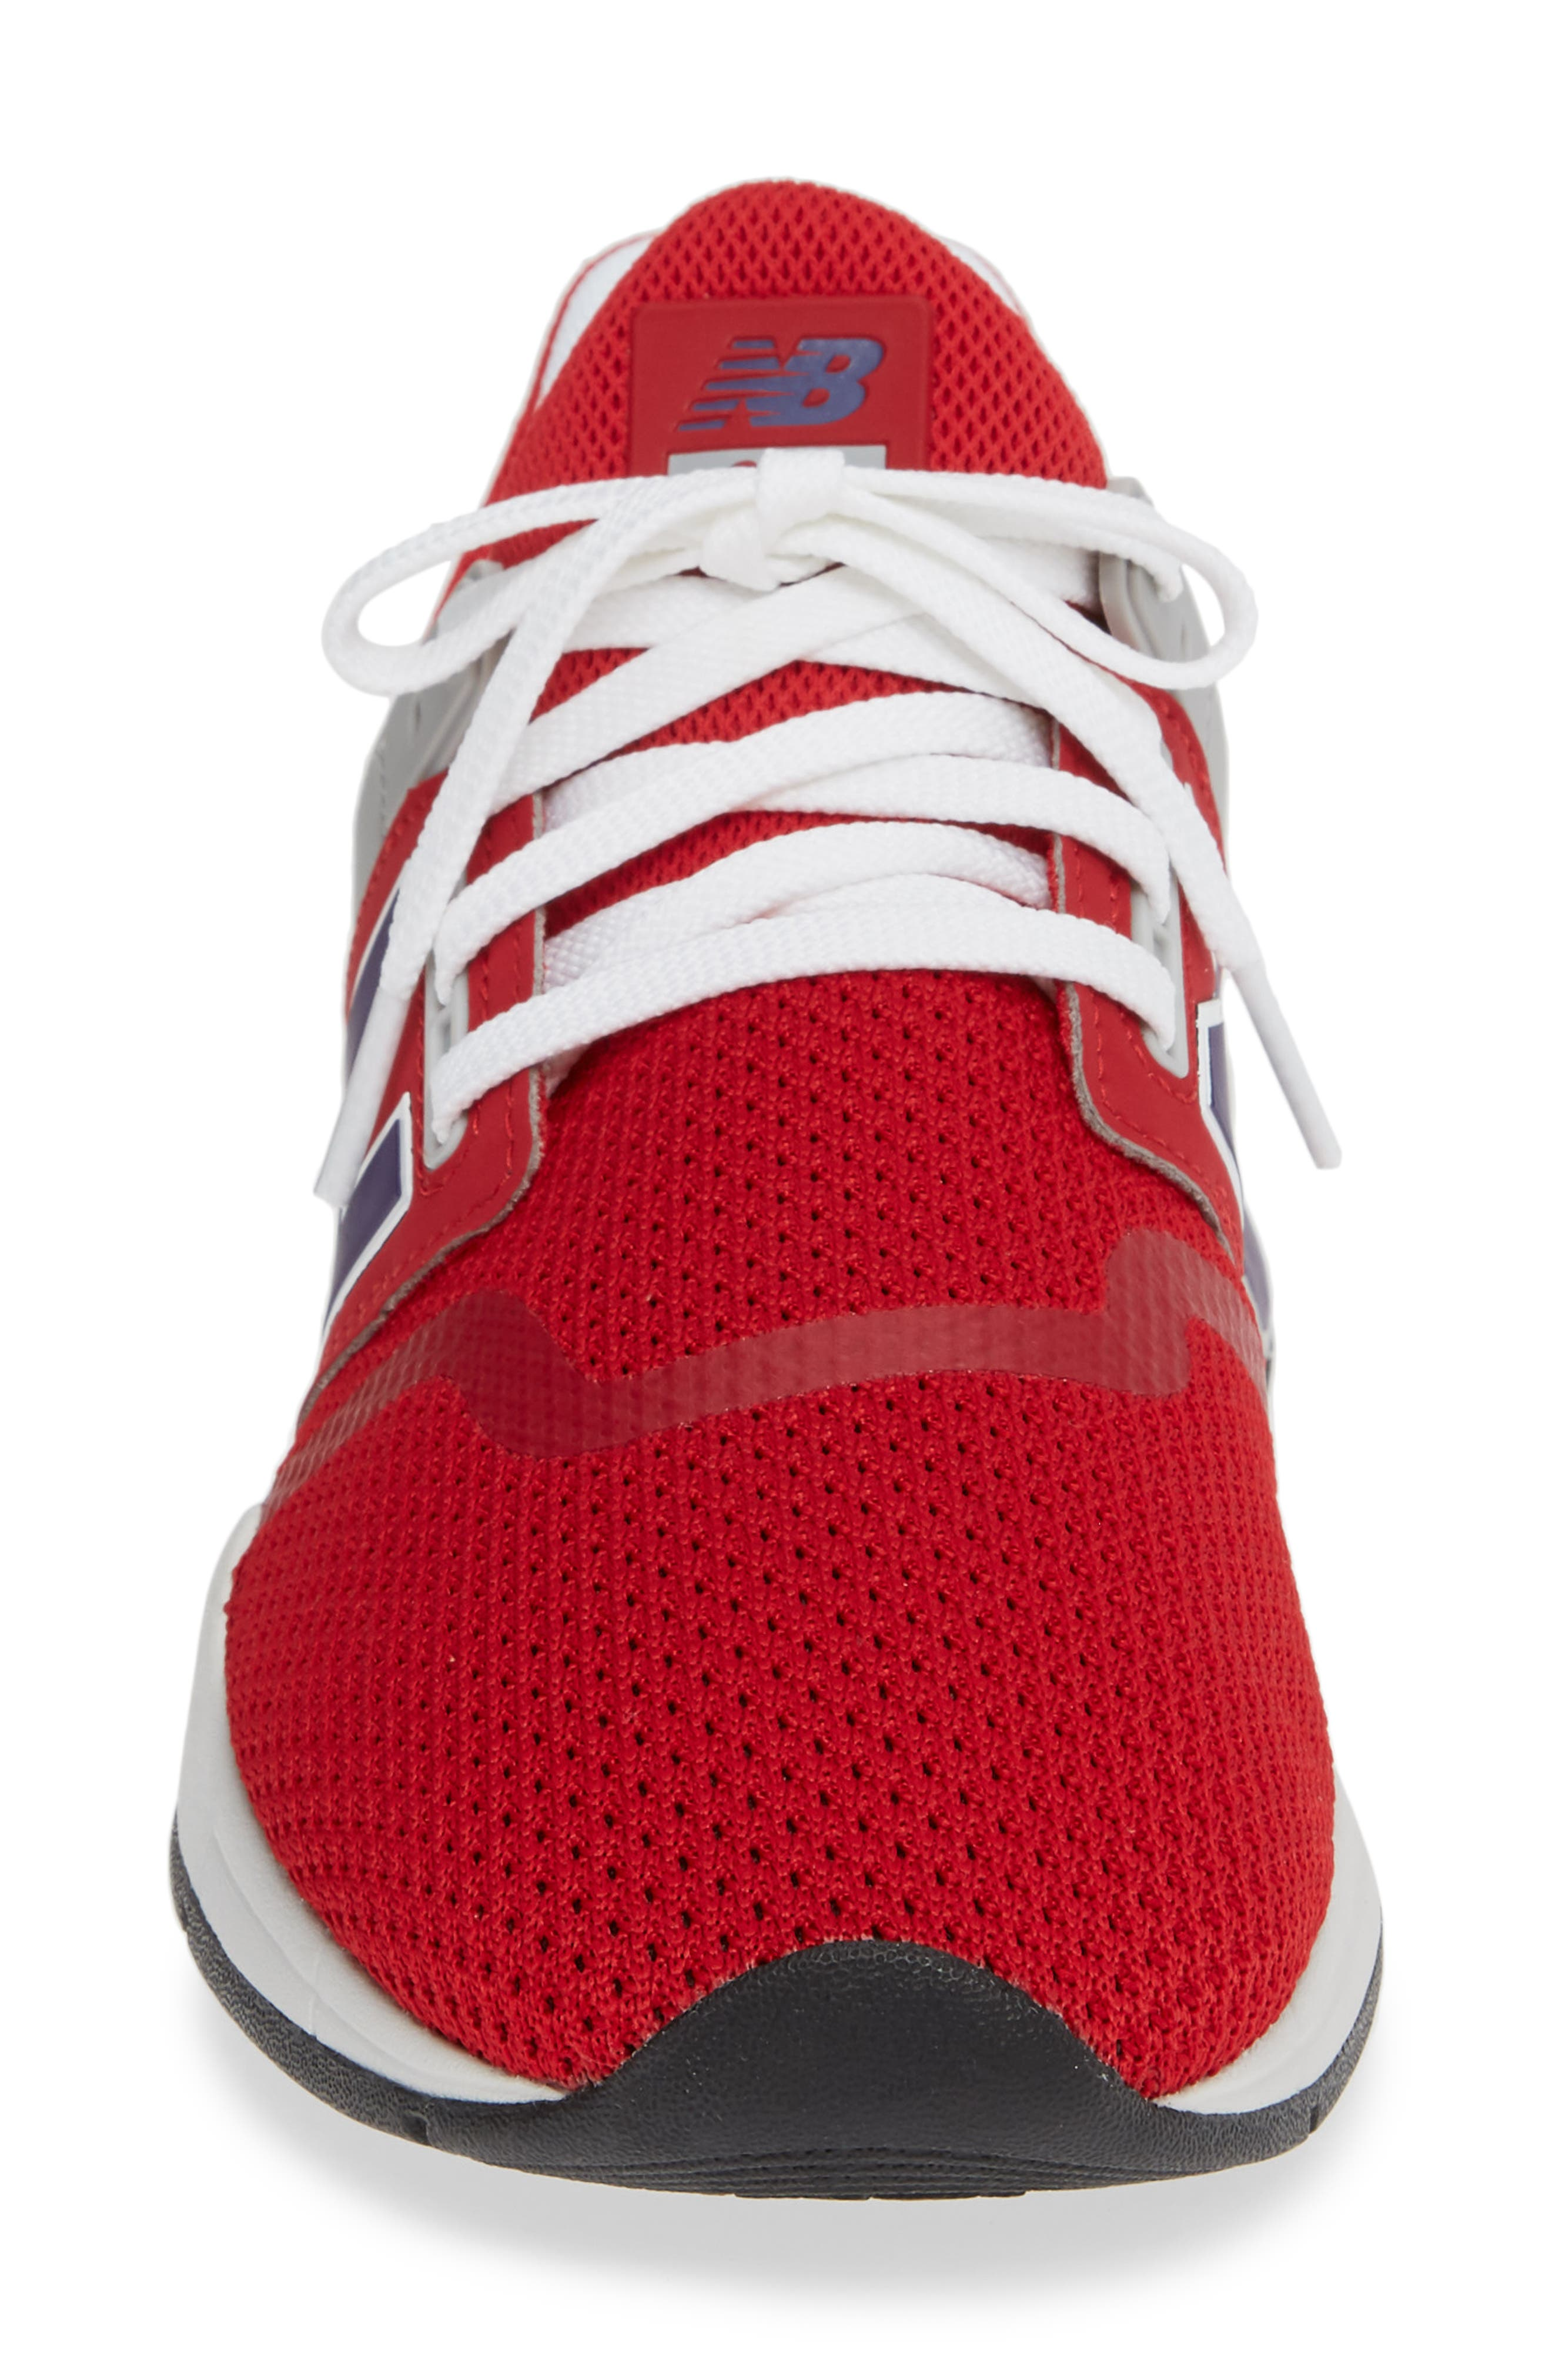 247 Sneaker,                             Alternate thumbnail 4, color,                             TANGO RED SYNTHETIC/ MESH